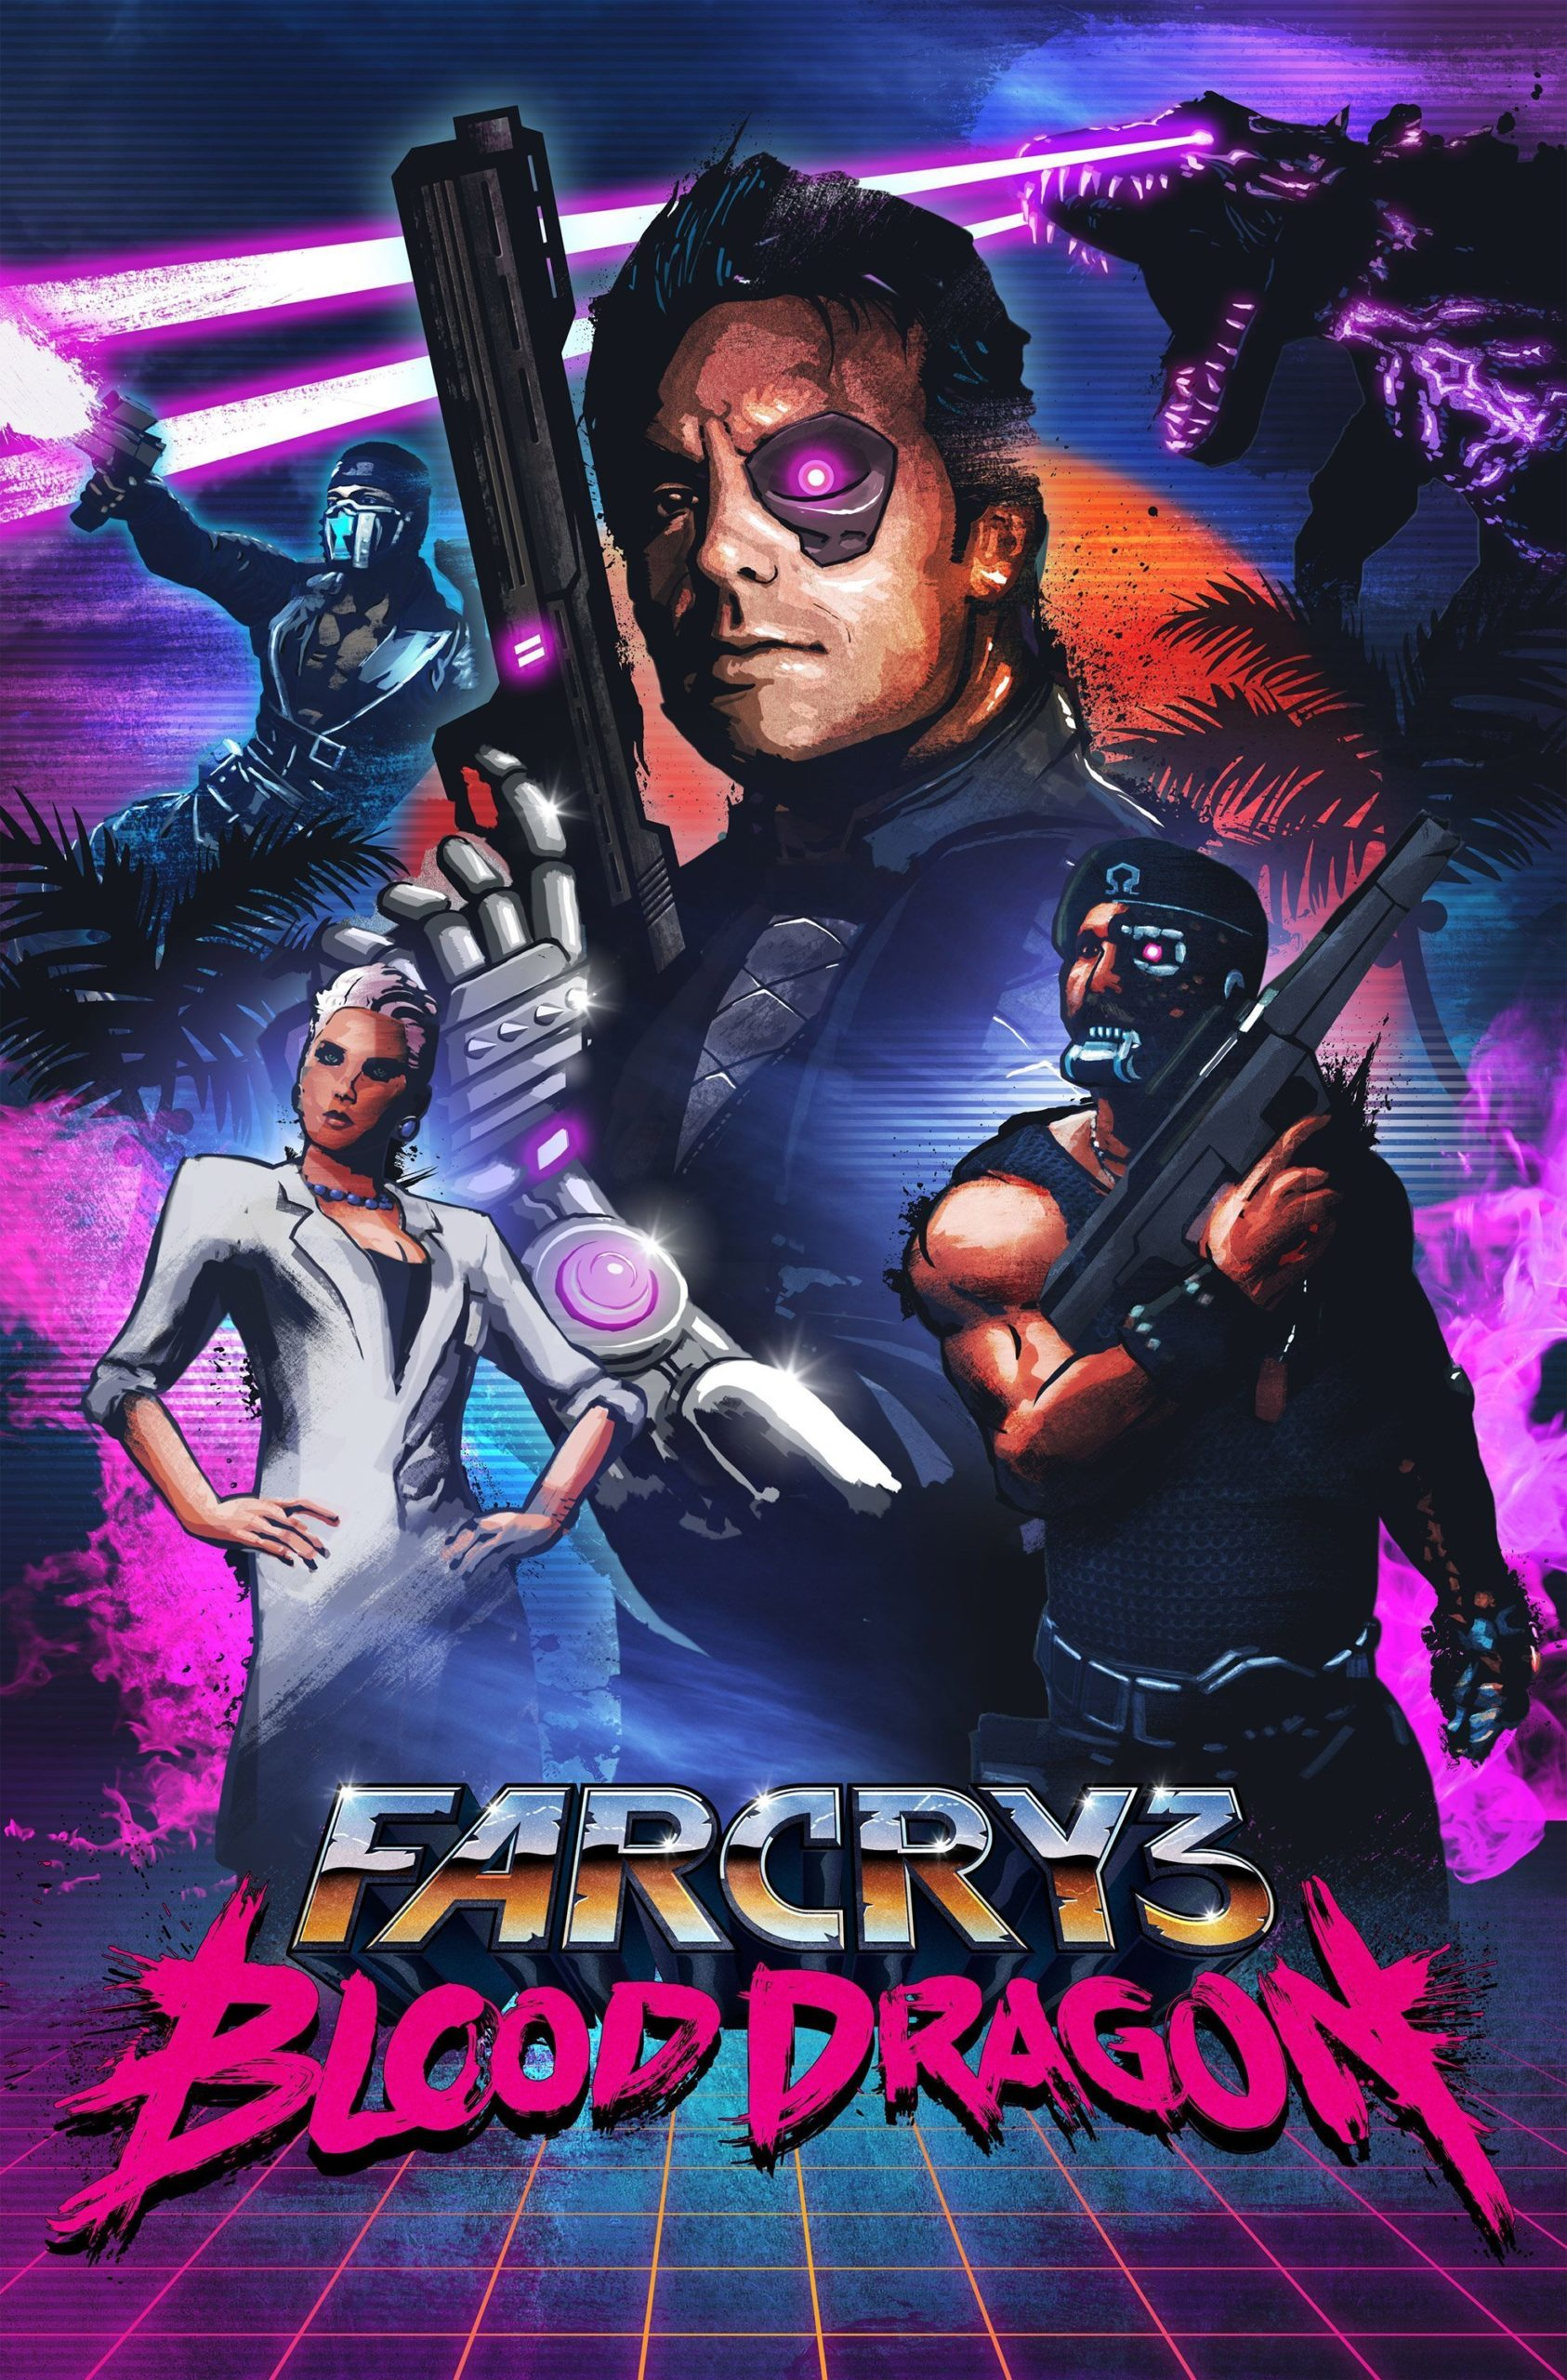 Poster du jeu vidéo Far Cry 3 : Blood Dragon